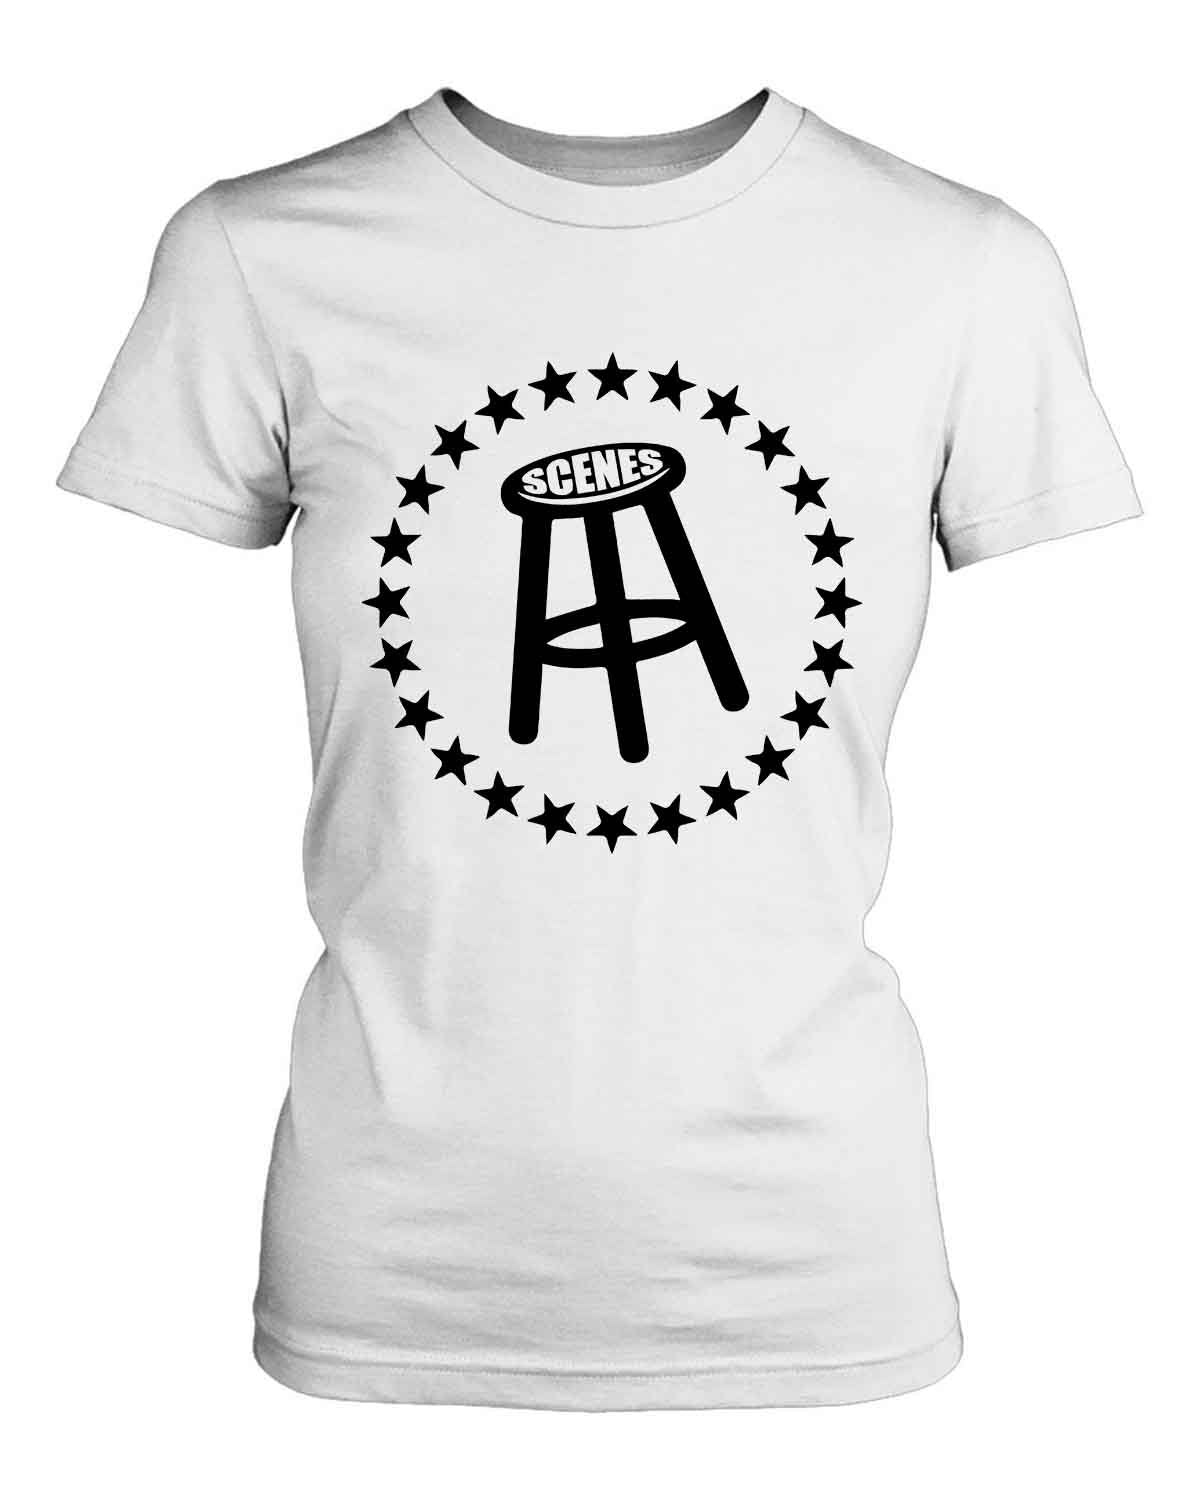 Barstool Sports Scenes Women'S T-Shirt